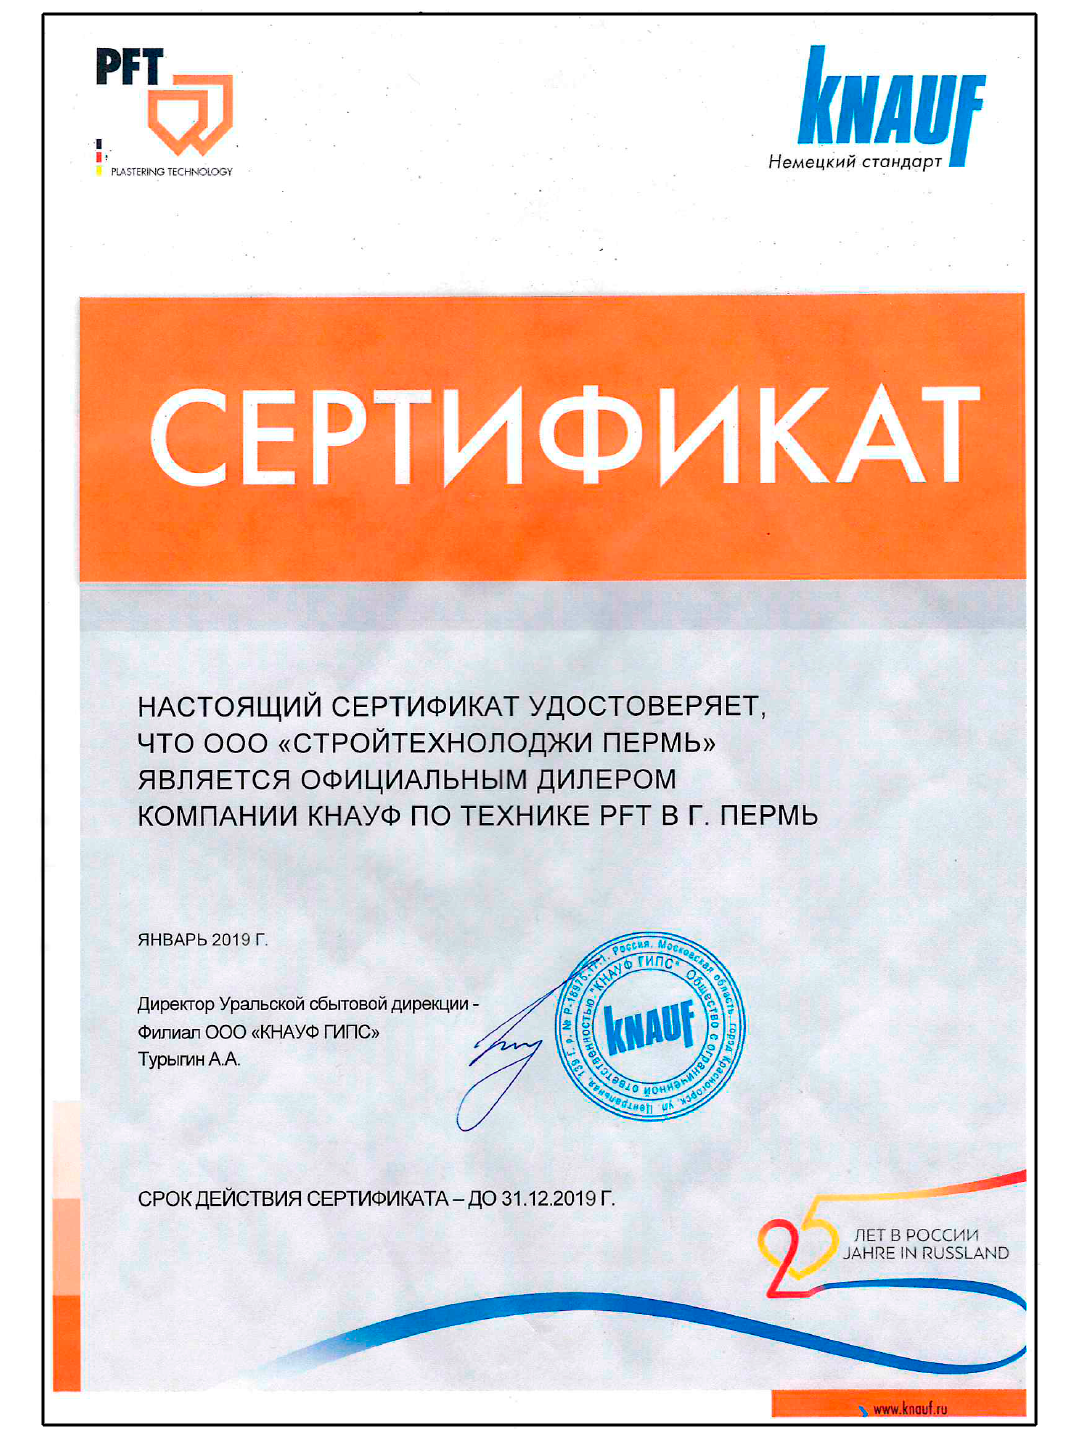 https://st-perm.ru/image/catalog/certificate/pft1.png